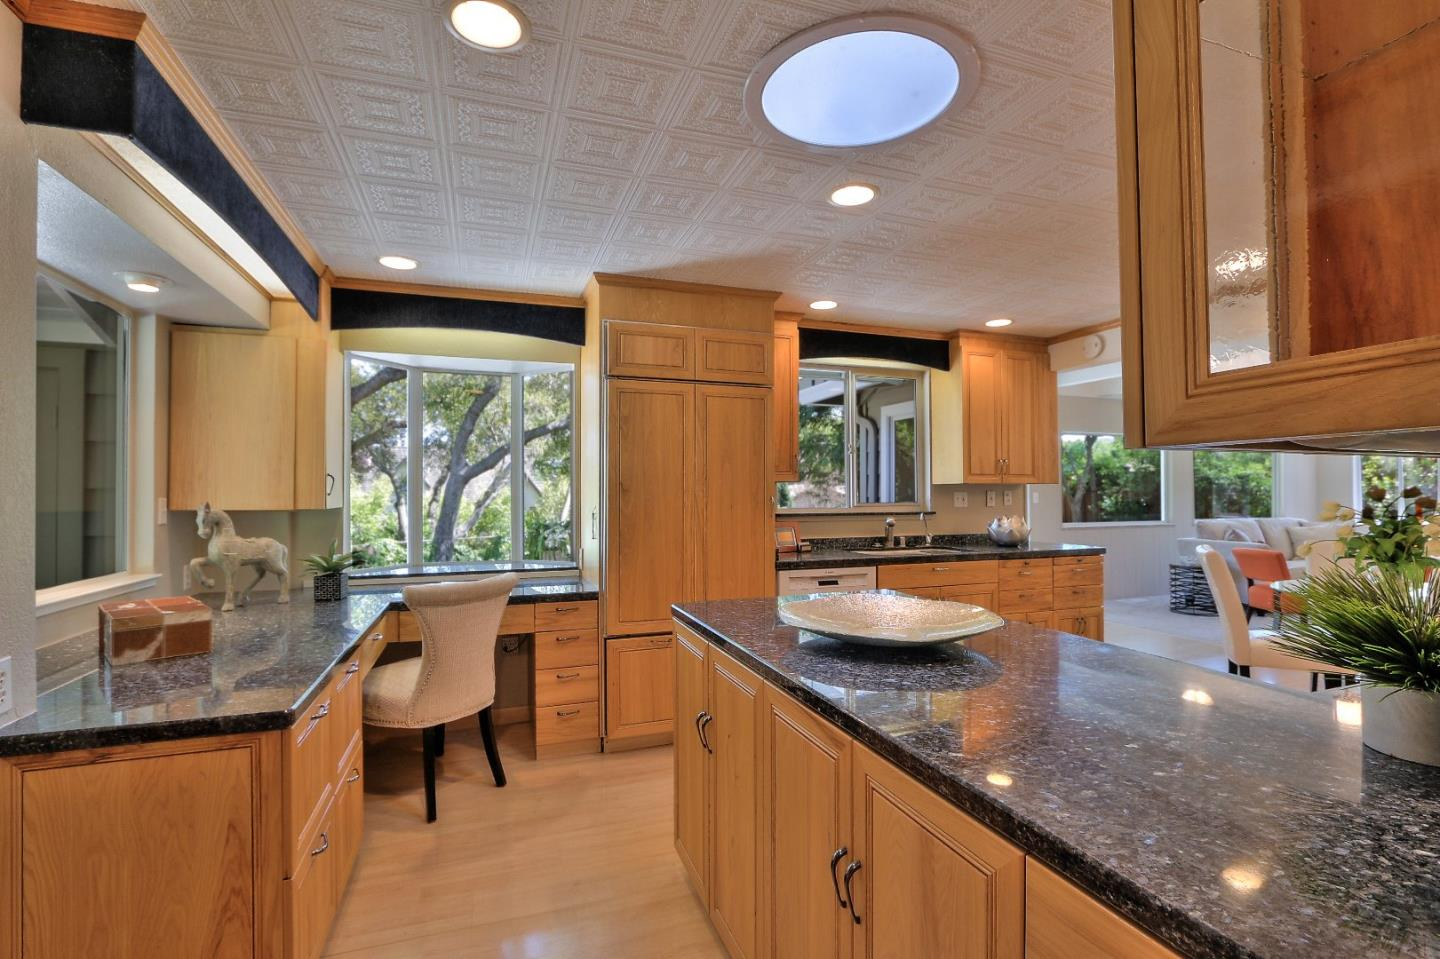 Additional photo for property listing at 17070 Wild Way  LOS GATOS, CALIFORNIA 95030